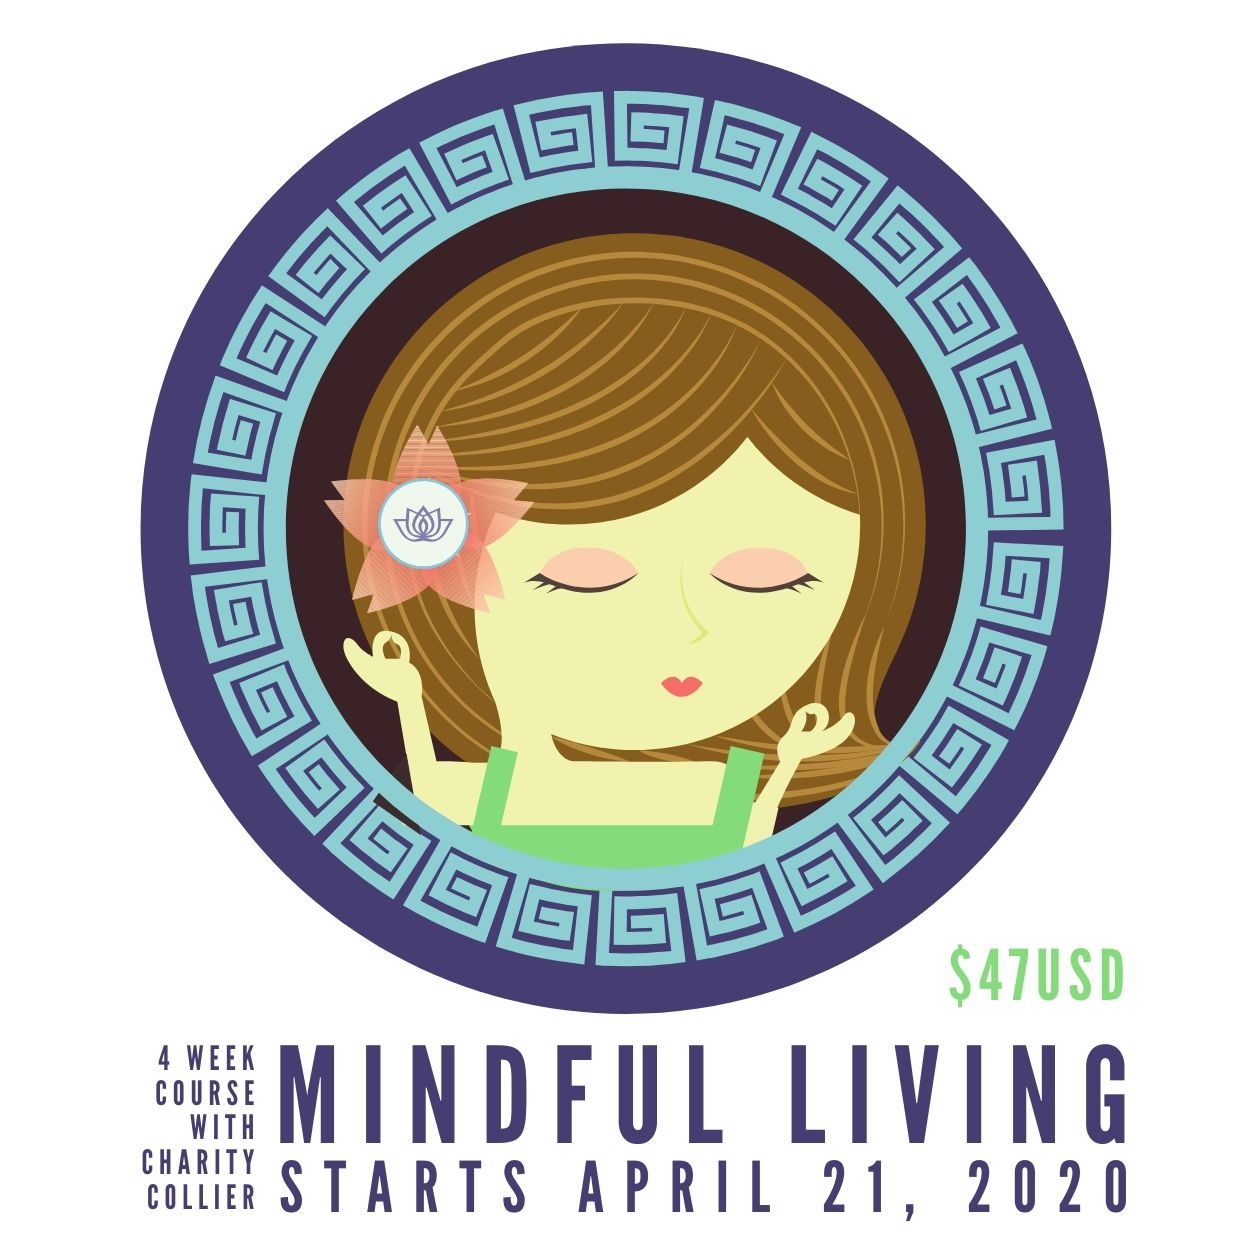 Mindfulness Course In